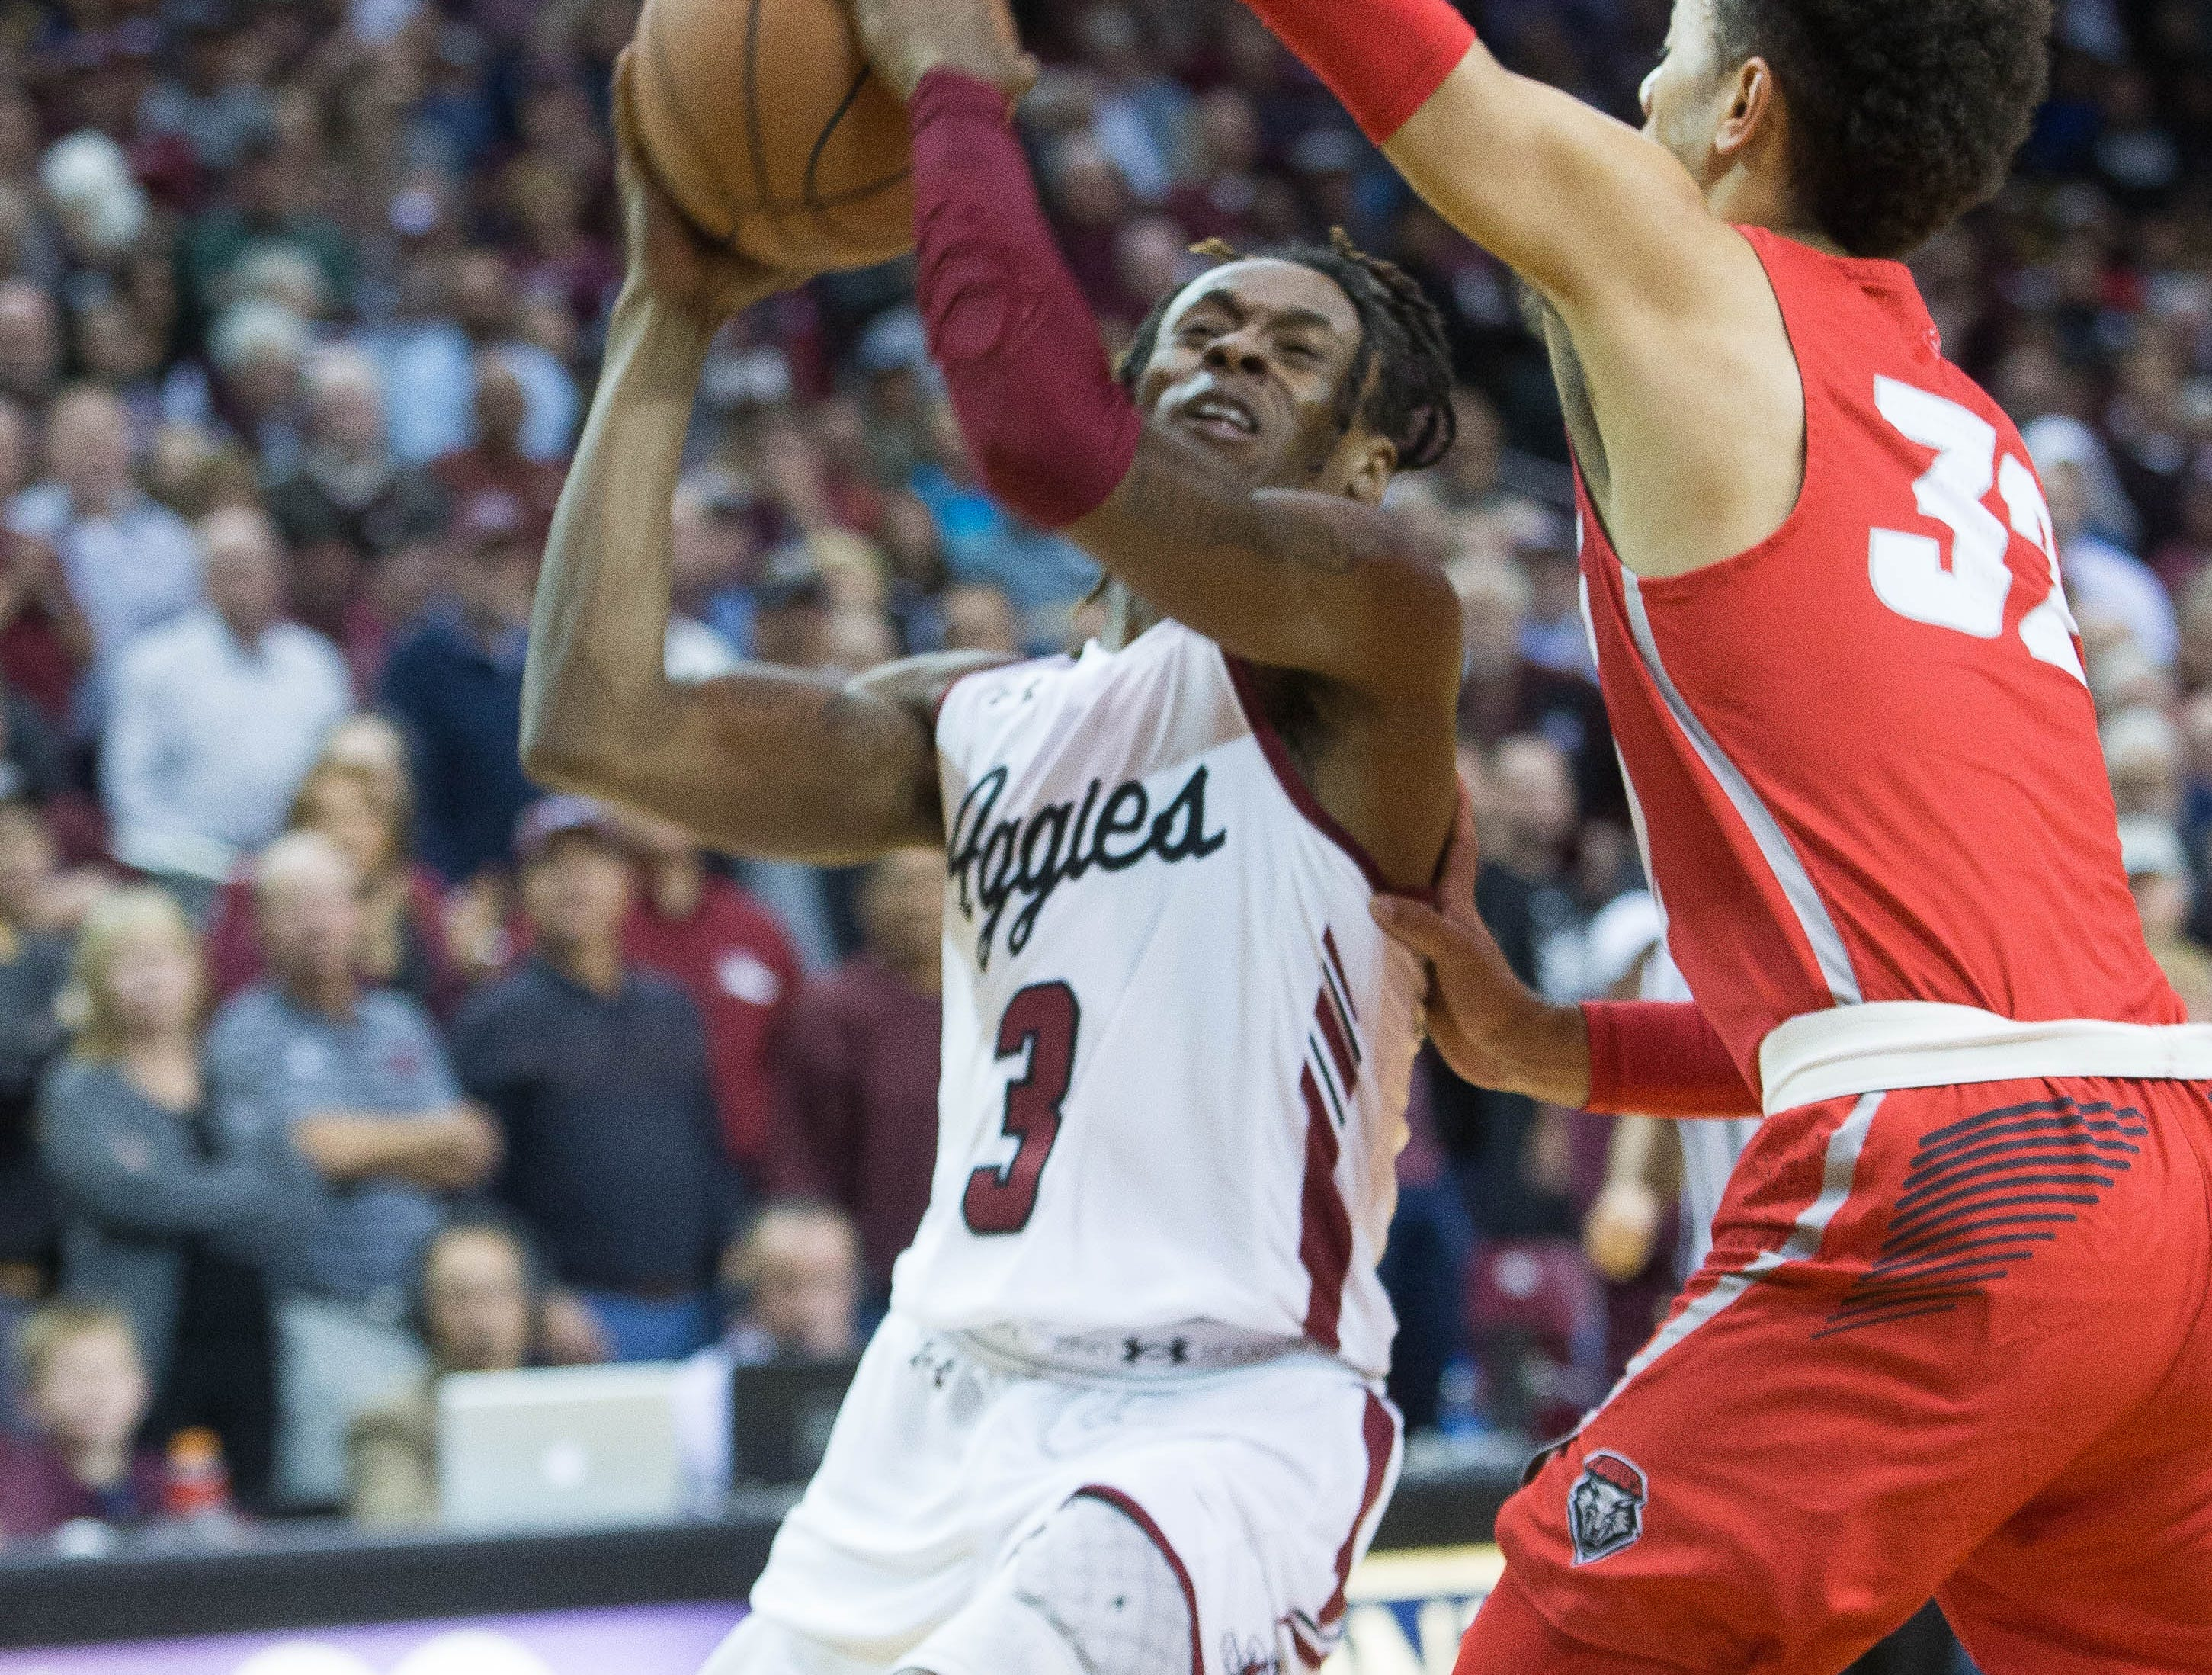 New Mexico State University's Terrell Brown, pushes past University of New Mexico's Anthony Mathis, during the first half of the game at the Pan American Center, Tuesday December 4, 2018. Aggies beat the Lobos 100 to 65.